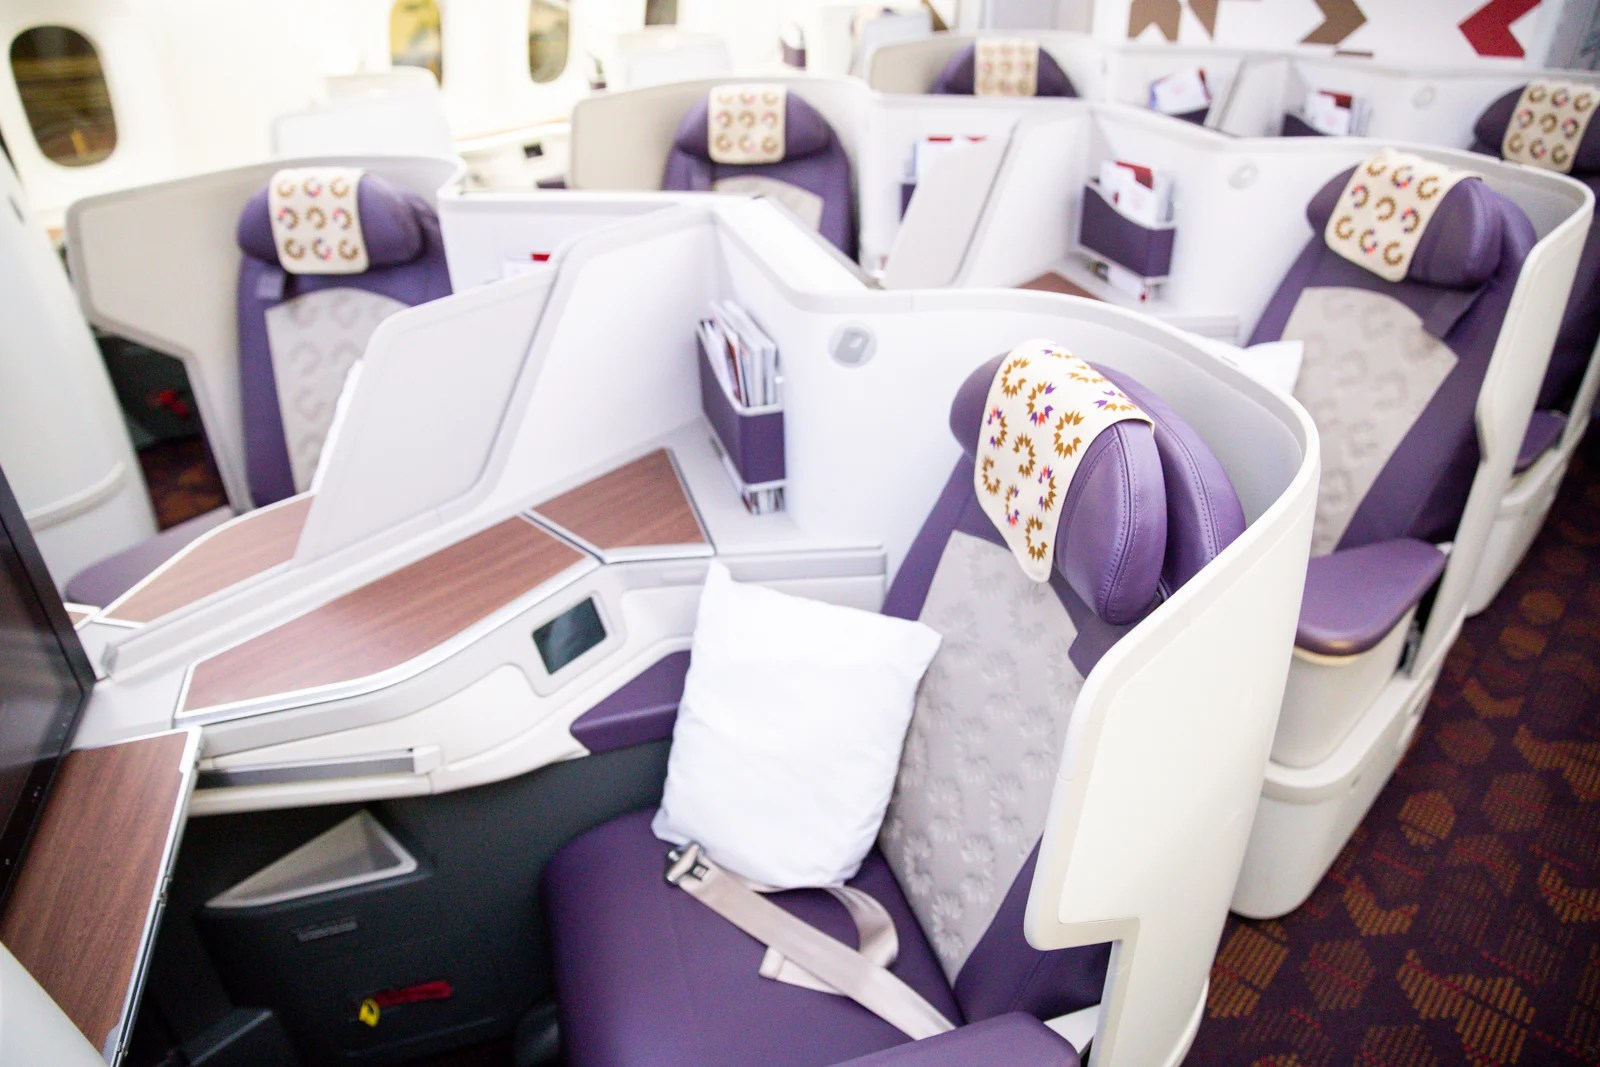 Buy Etihad miles at a 40% discount, great for future business and first class awards